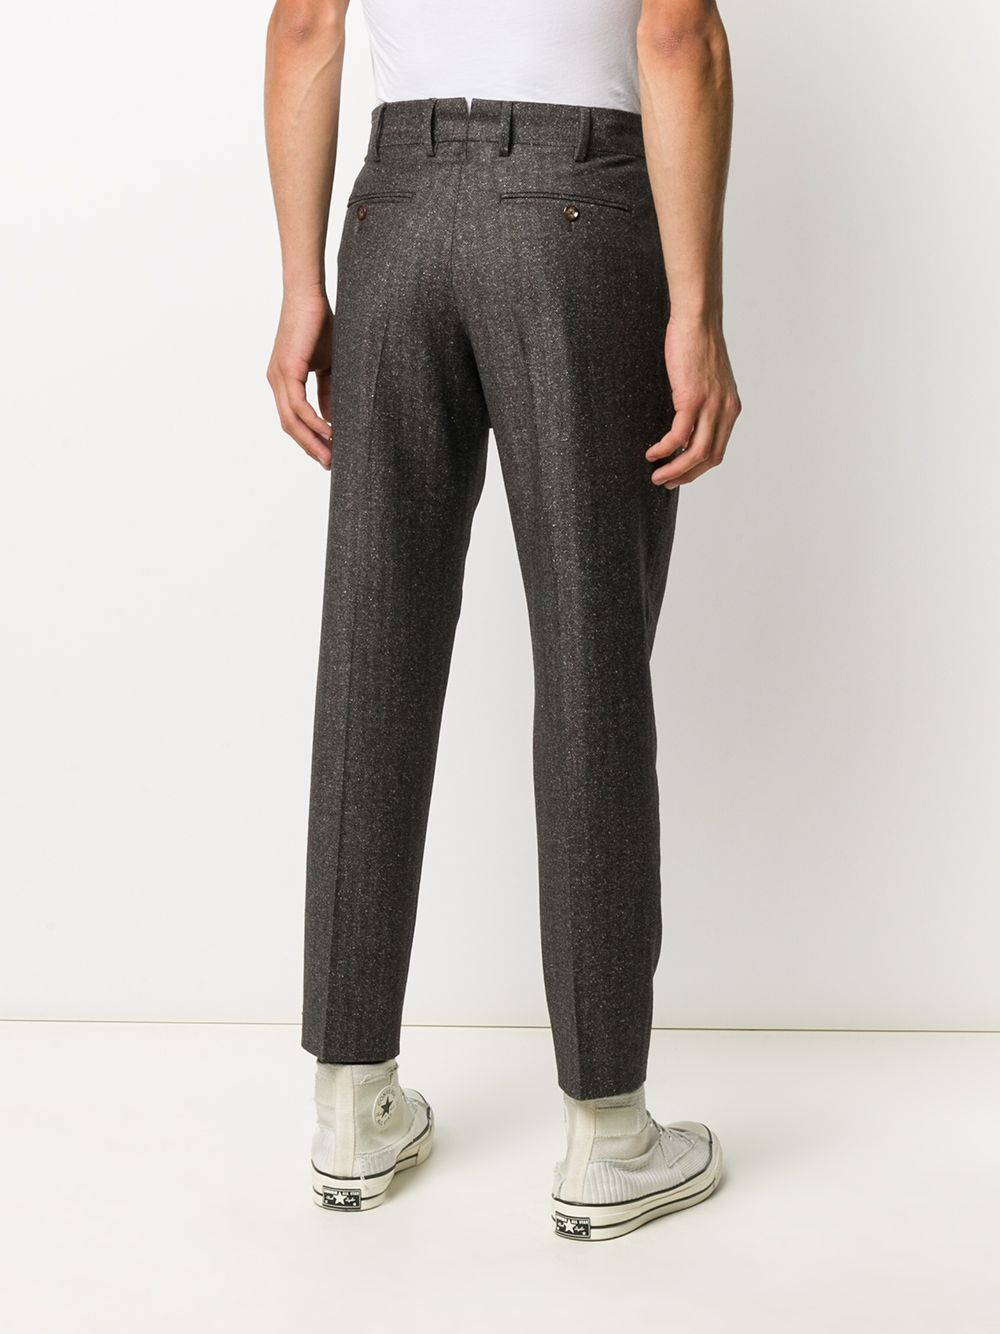 Anthracite gray wool and silk trousers  PT01 |  | CORFZ0Z00AND-ZI450180